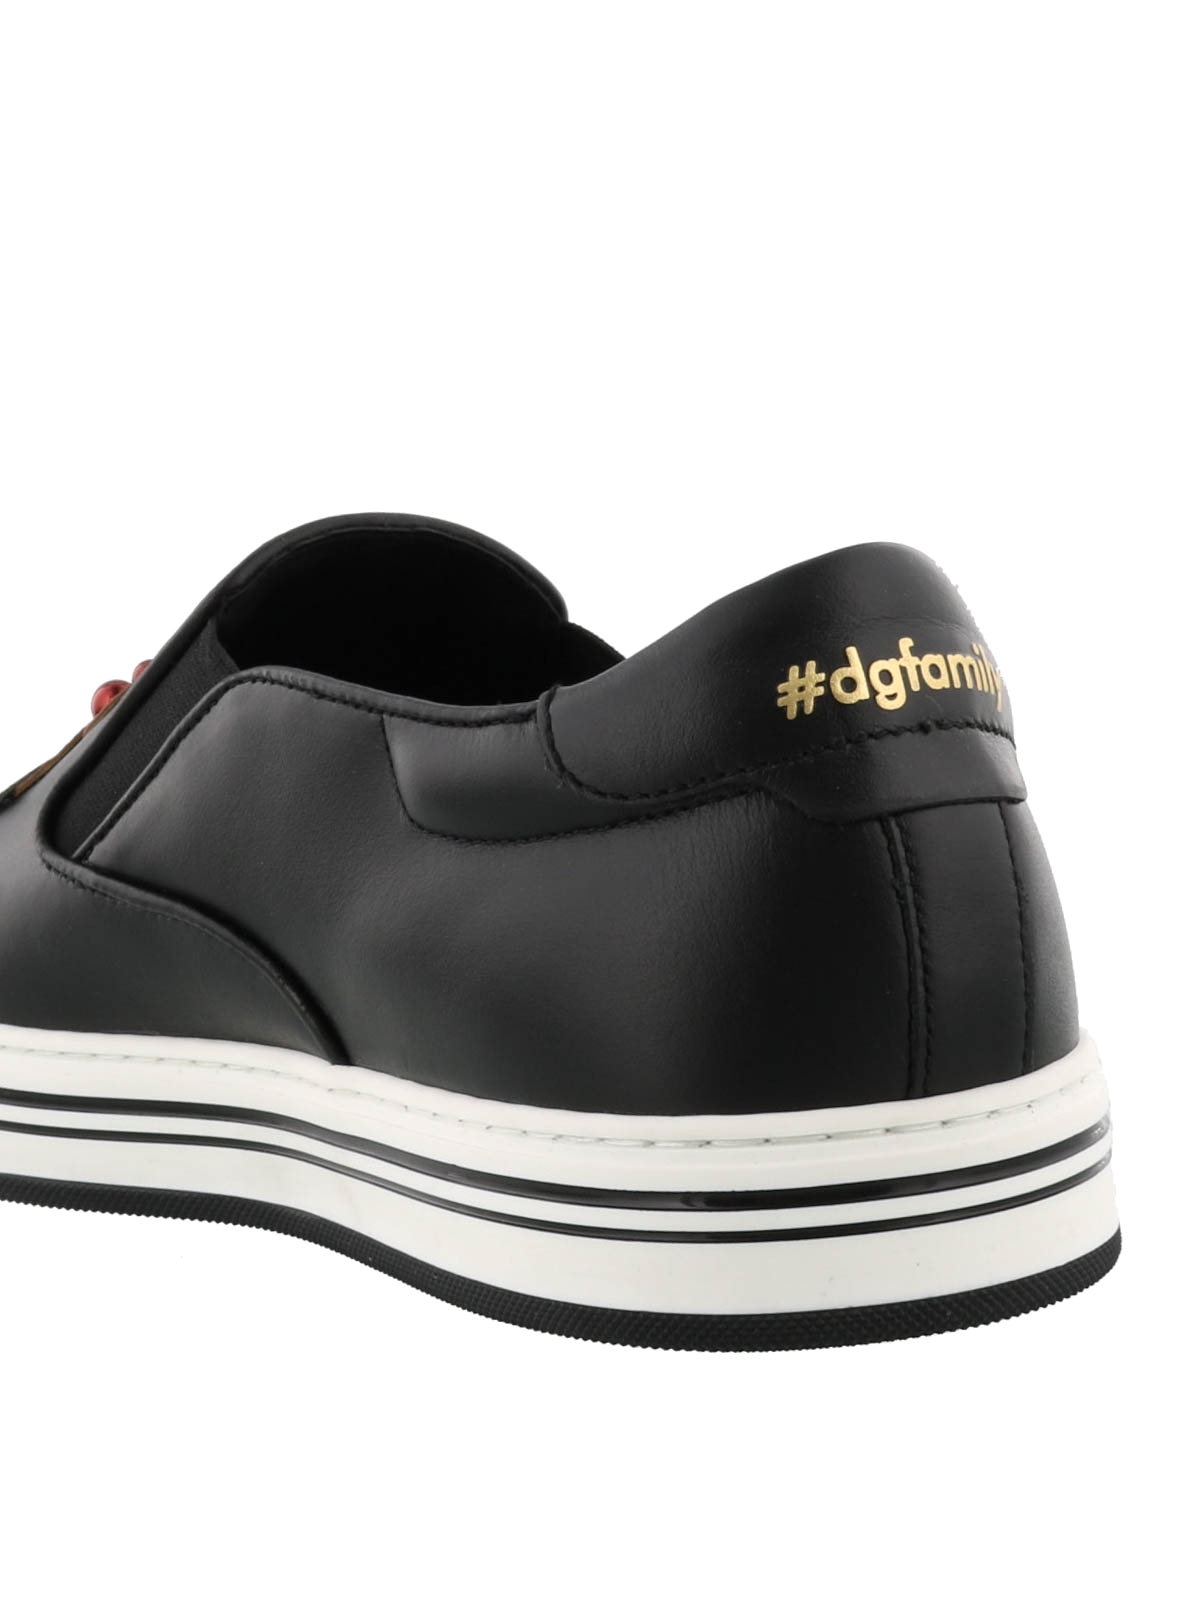 94d9a18cb Dolce   Gabbana -  DGFamily patch leather slip-ons - trainers ...